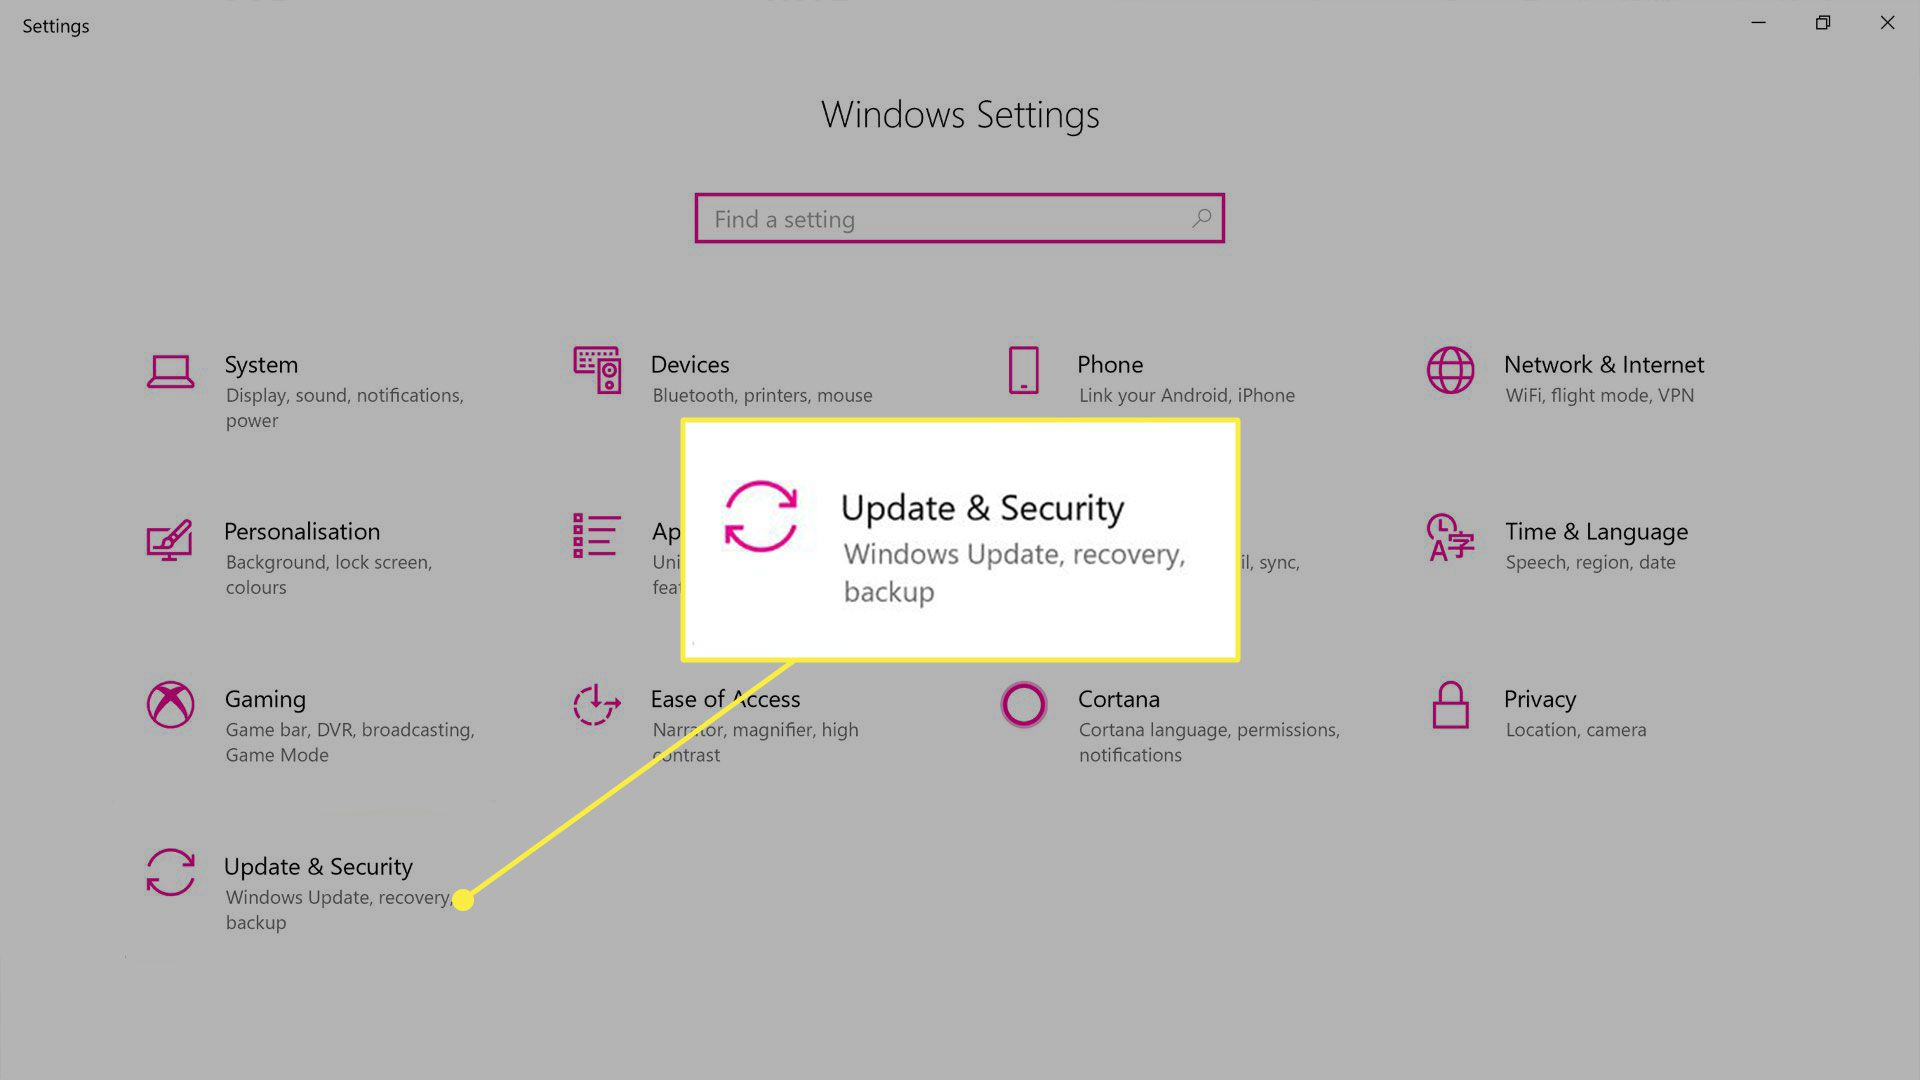 The Update & Security setting